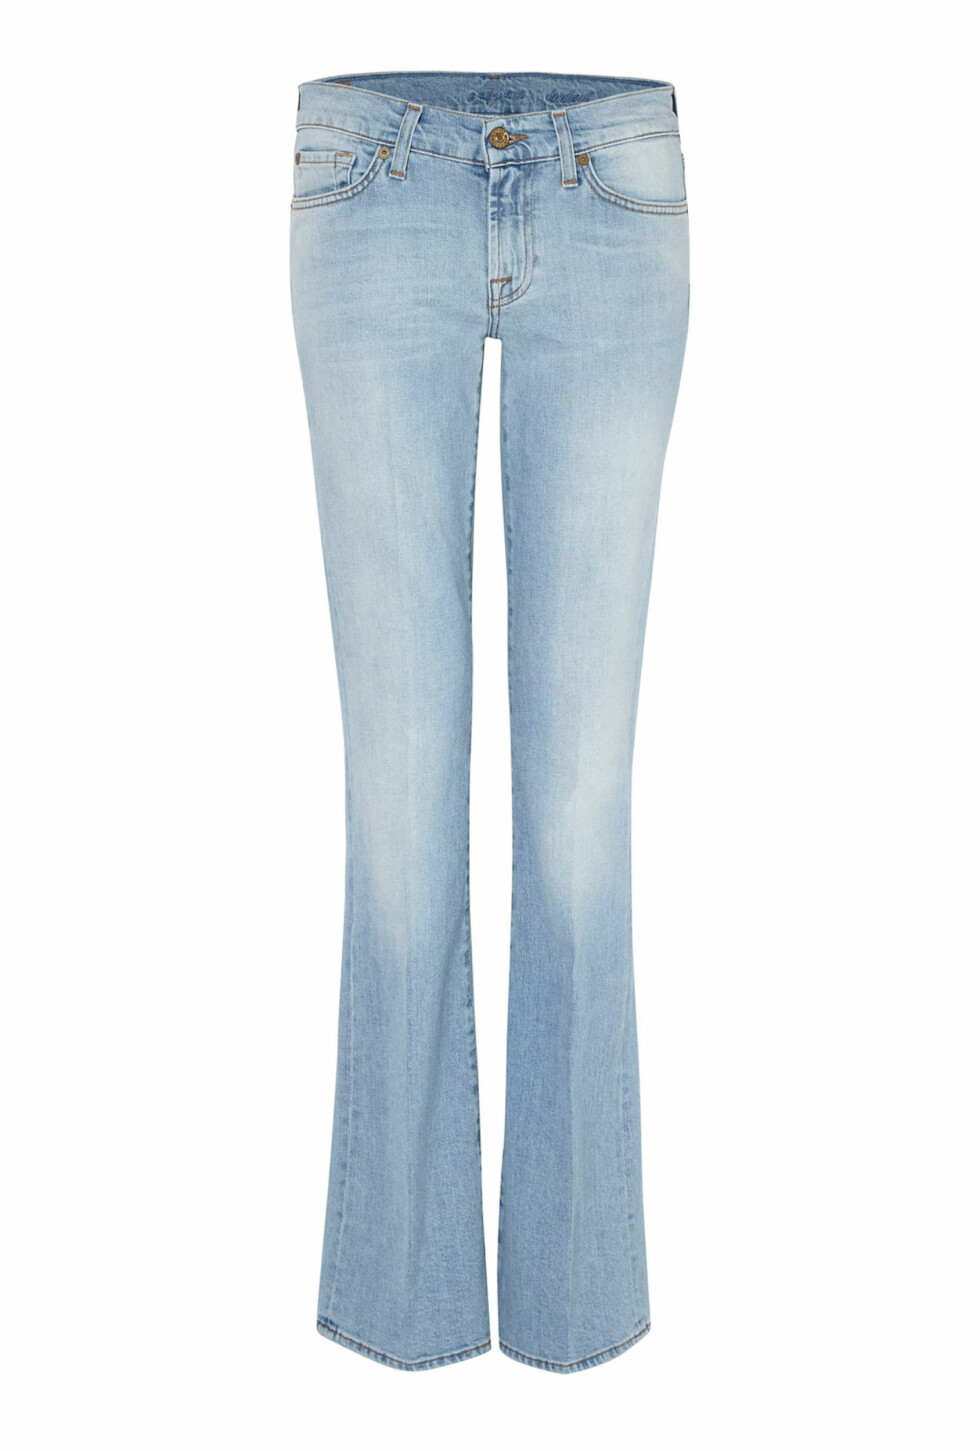 Jeans (kr 1860, 7 for all mankind). Foto: Produsenten